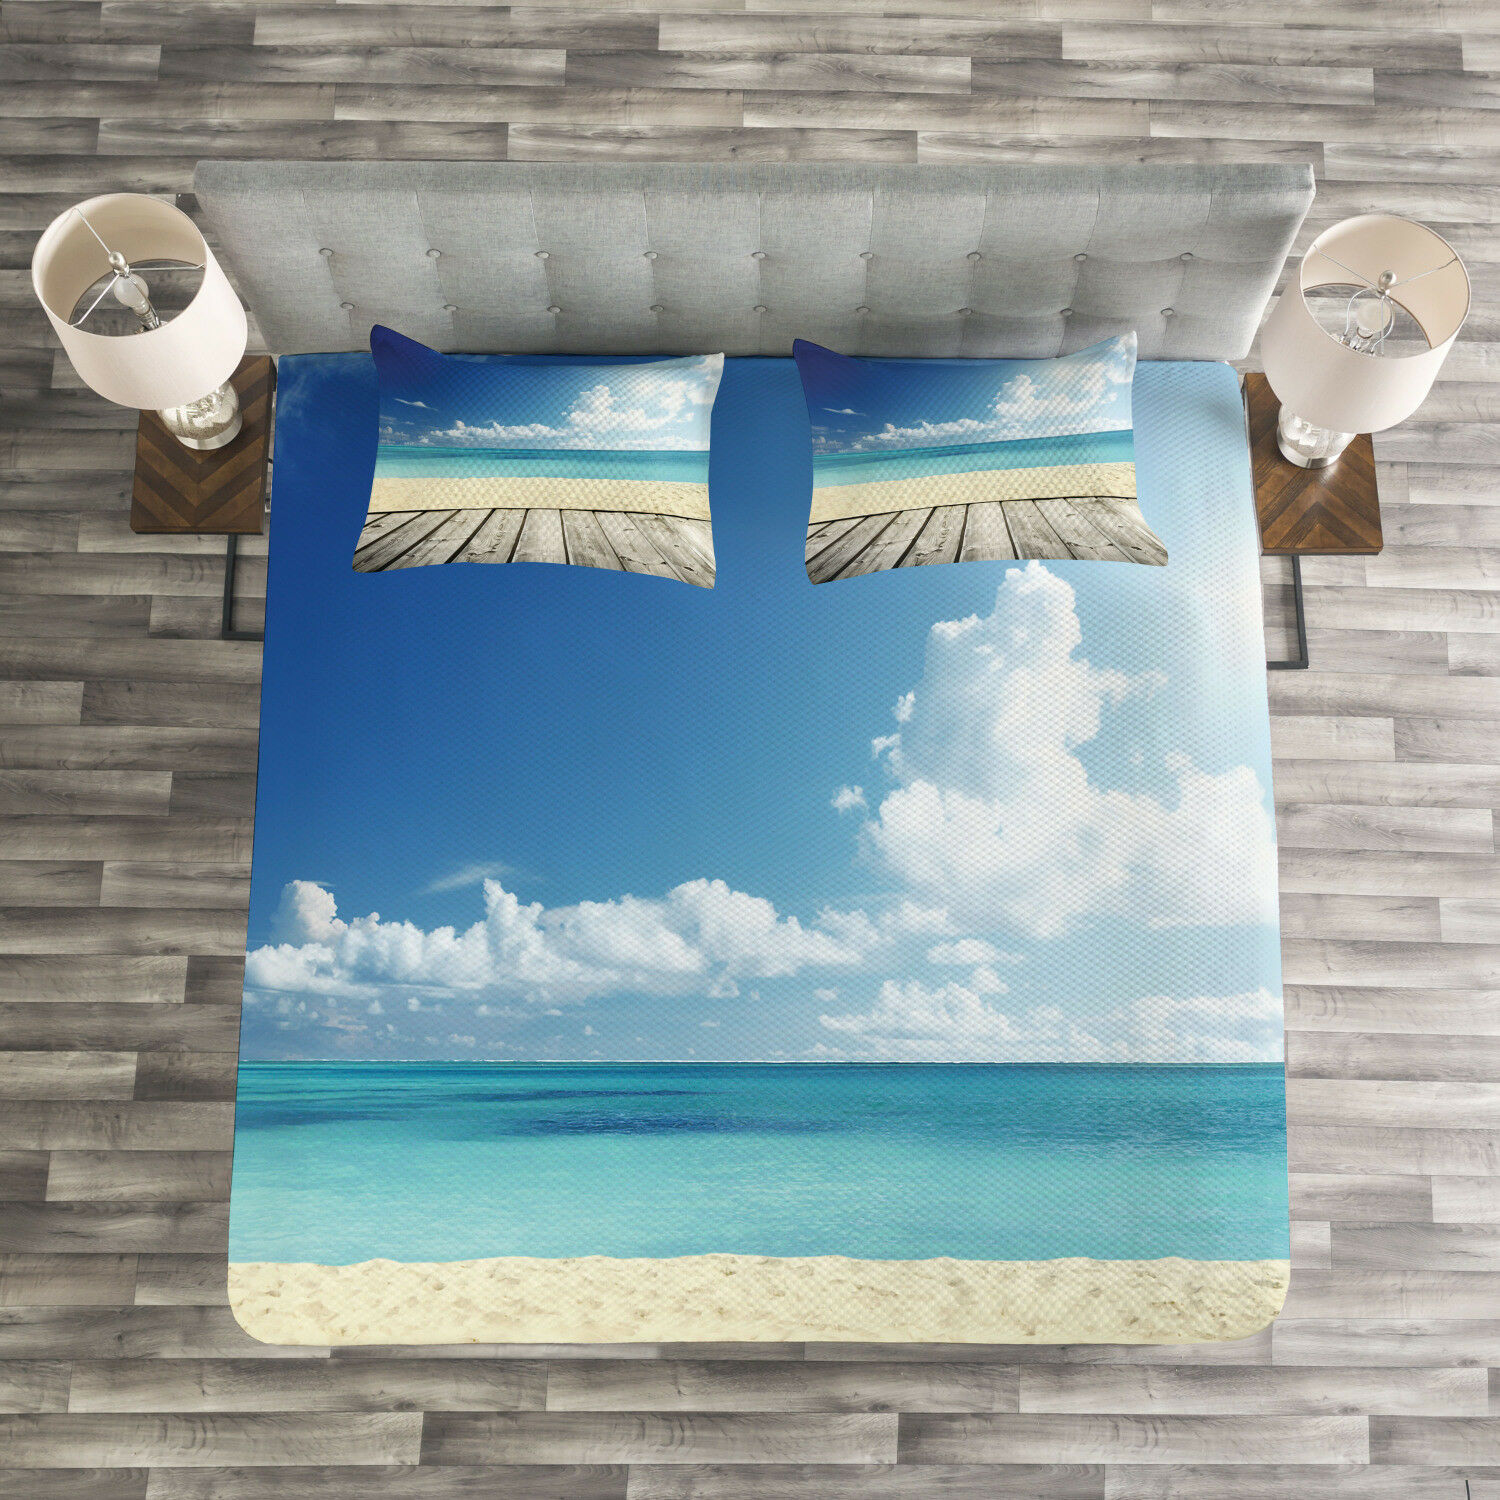 Landscape Quilted Bedspread & Pillow Shams Set, Exotic Ocean Nautical Print